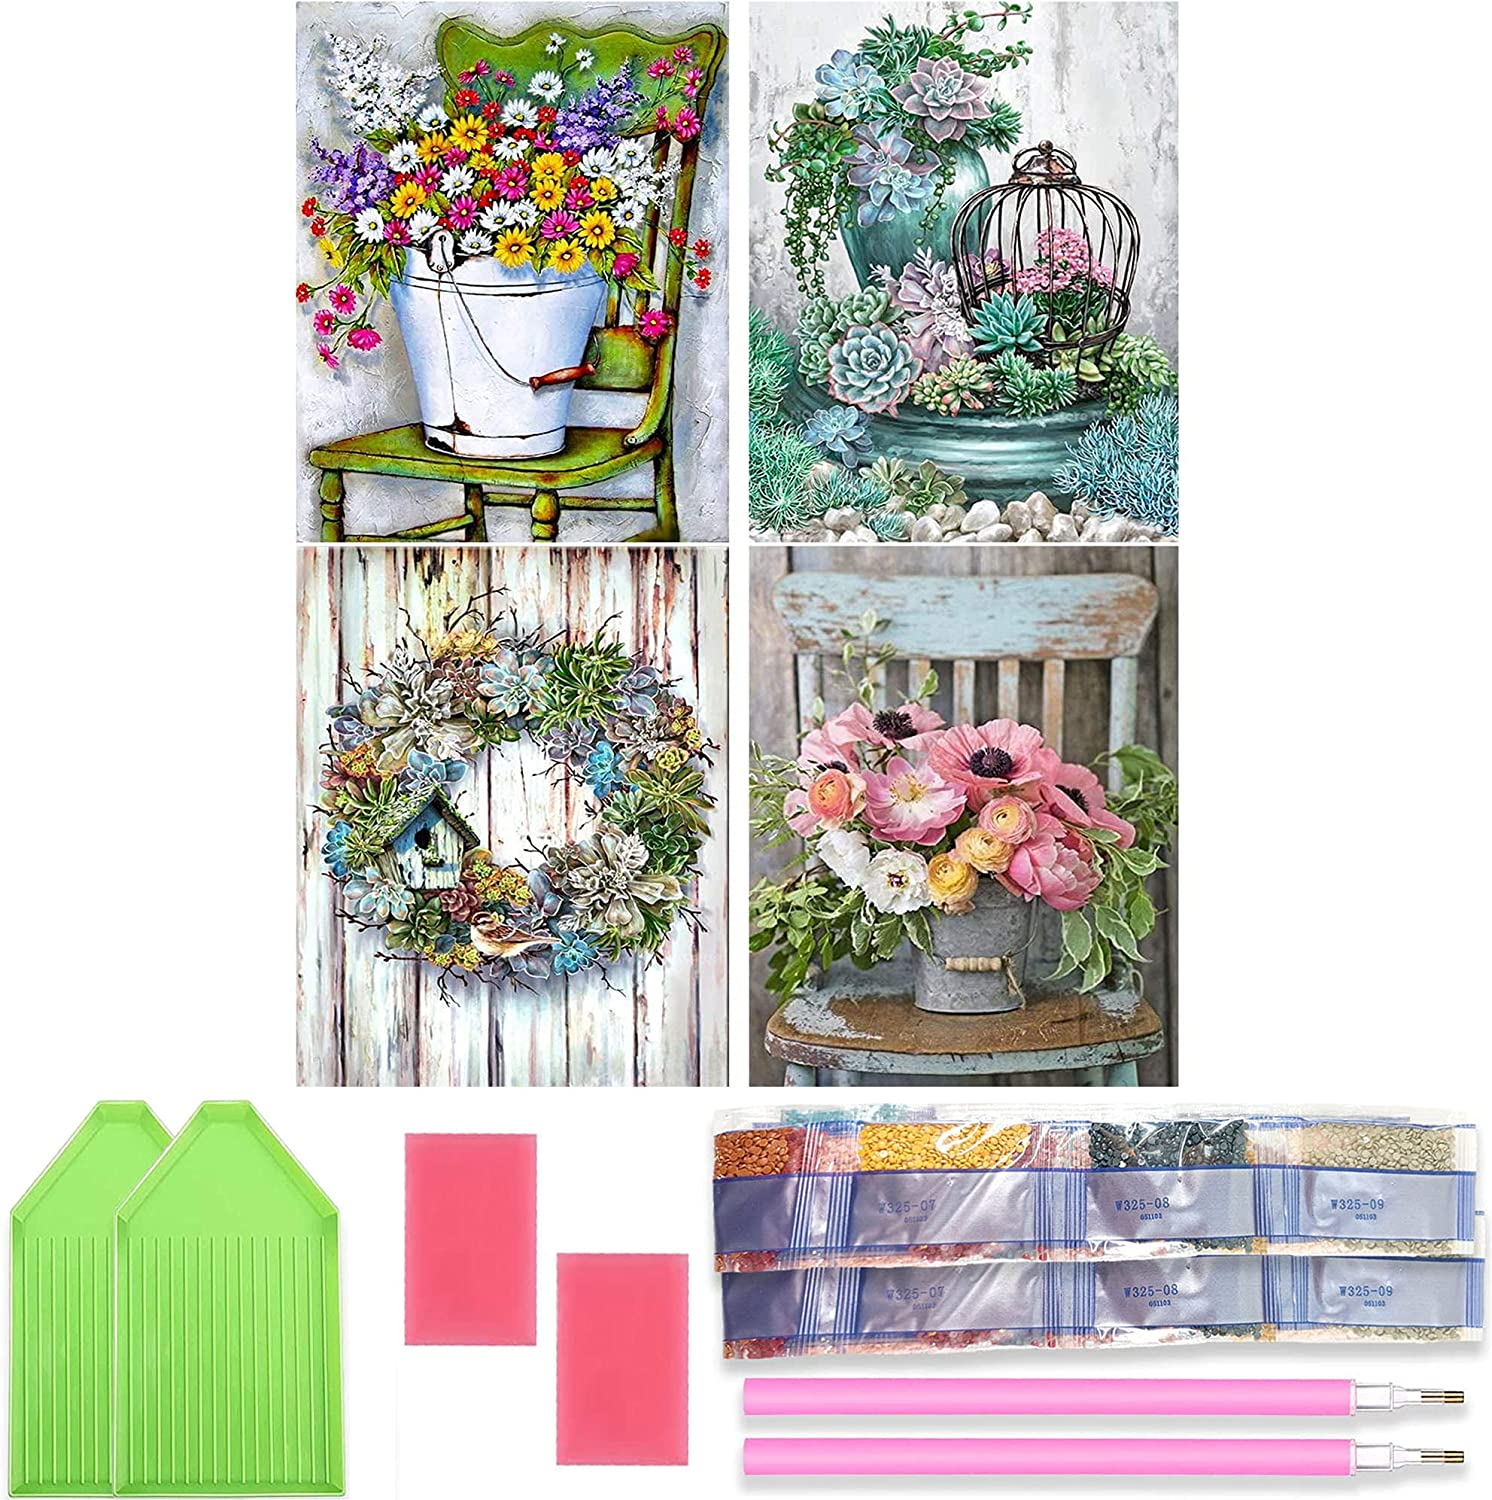 Ranking TOP19 Ginfonr 4 Pack 5D Diamond Painting Number Kits Max 63% OFF D Flower by Full